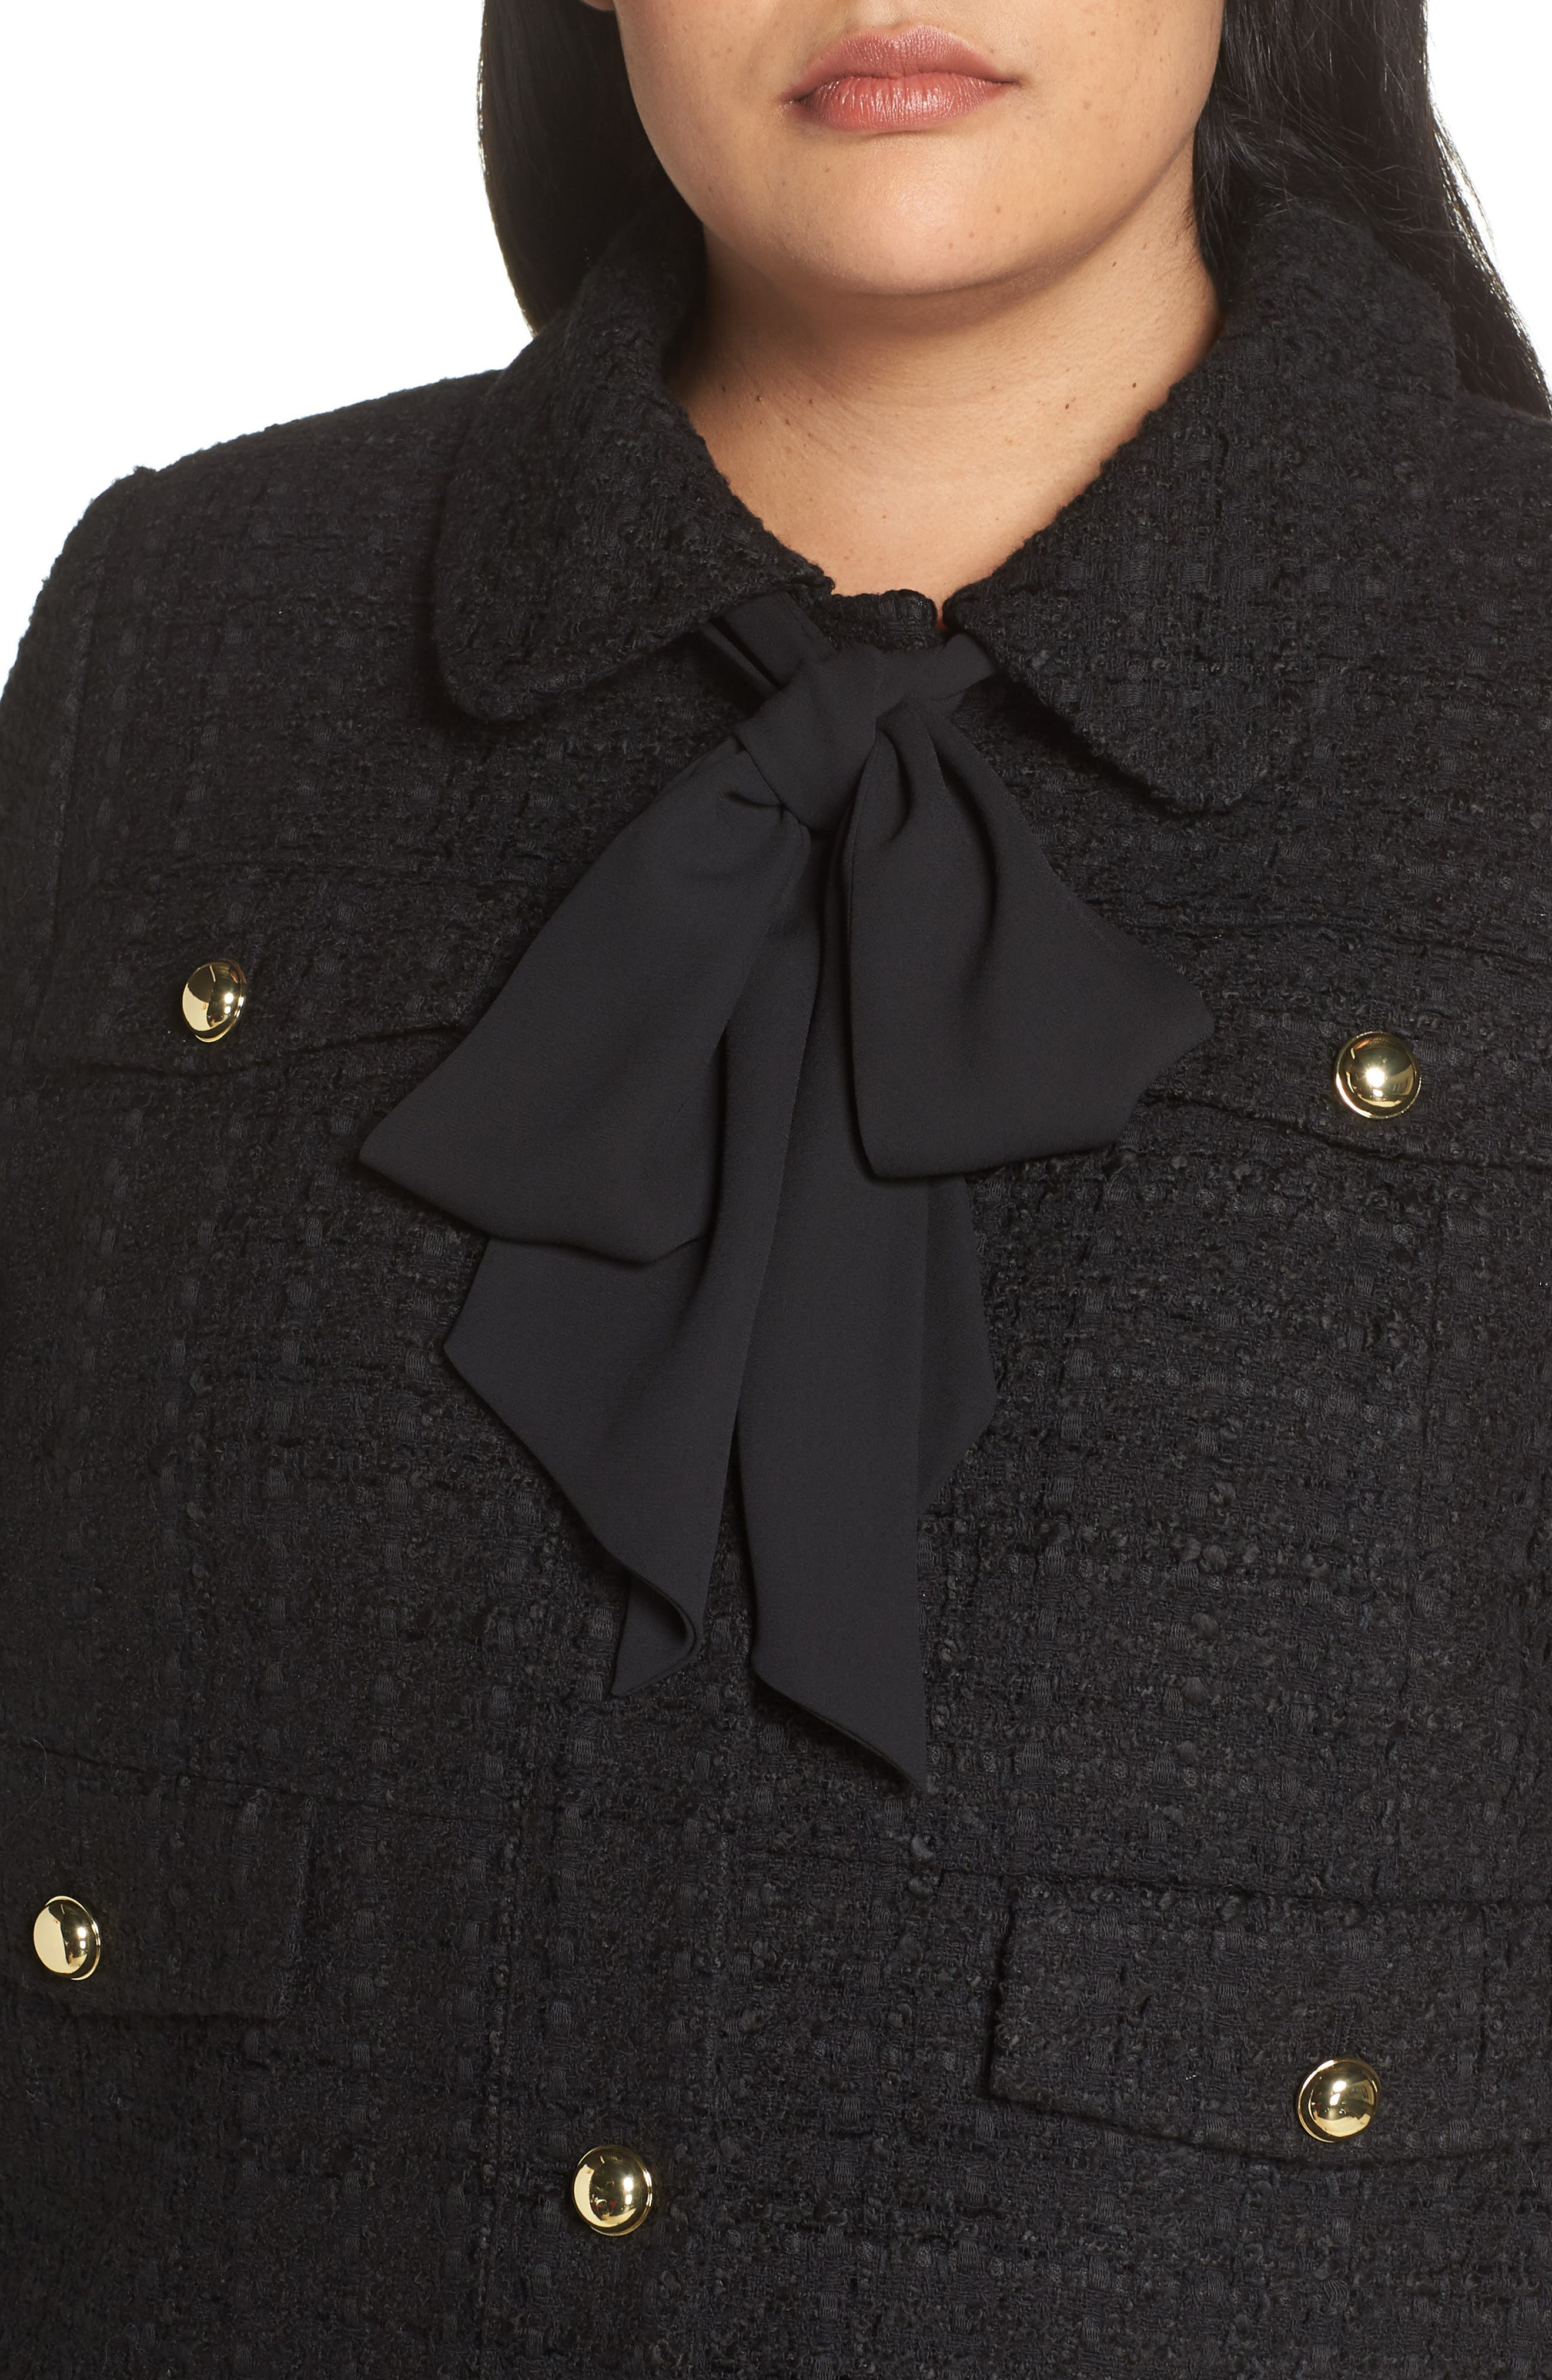 x Atlantic-Pacific Bow Detail Tweed Jacket,                             Alternate thumbnail 4, color,                             001